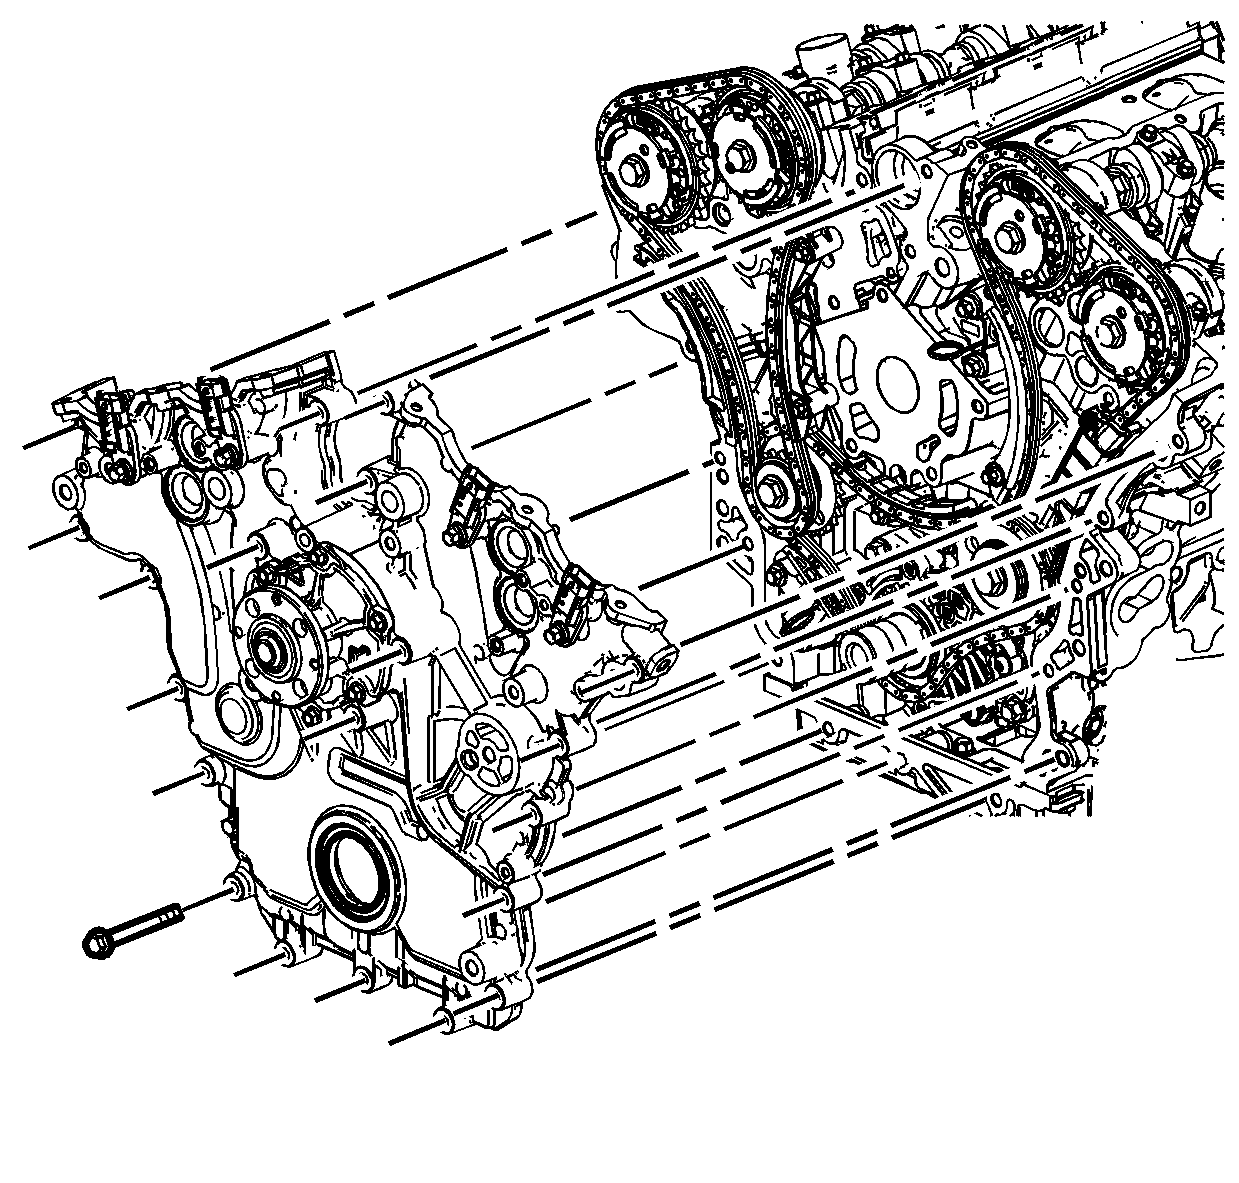 P0017 code so where is the crankshaft position/camshaft position